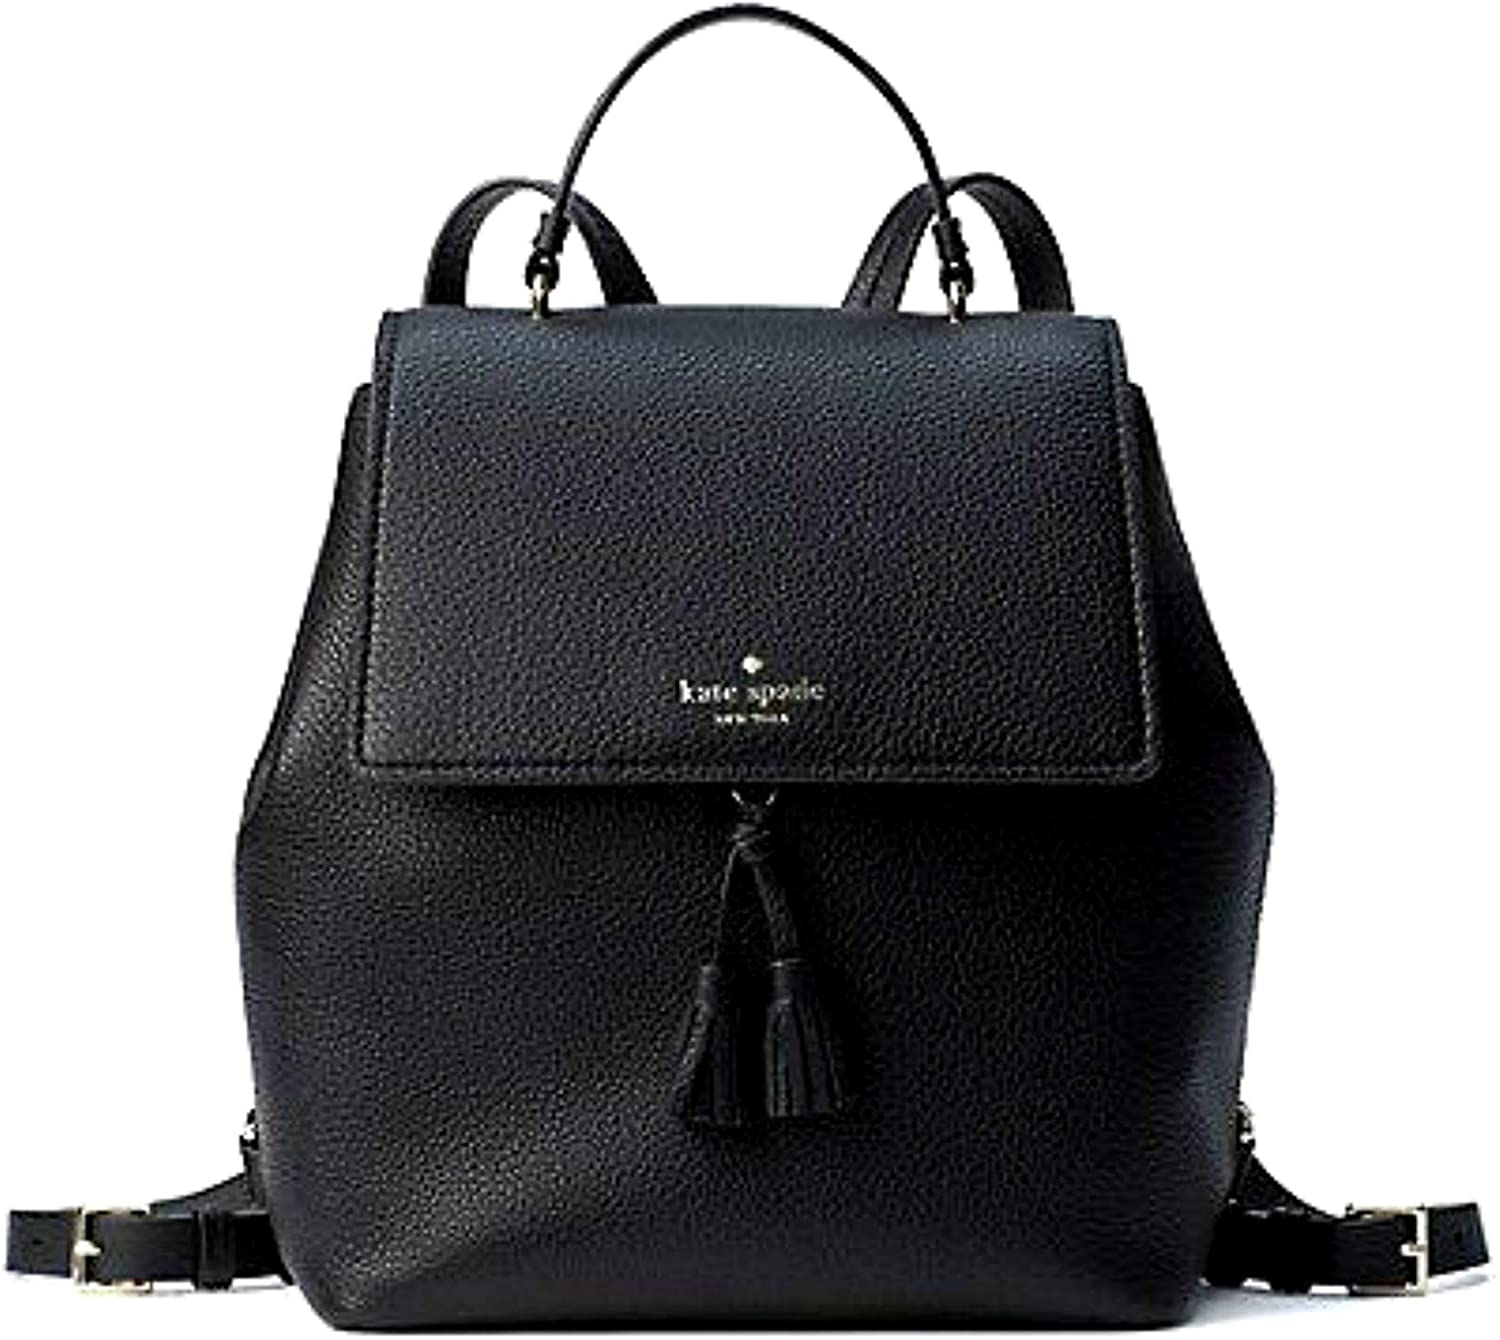 Kate Spade Hayes Leather backpack